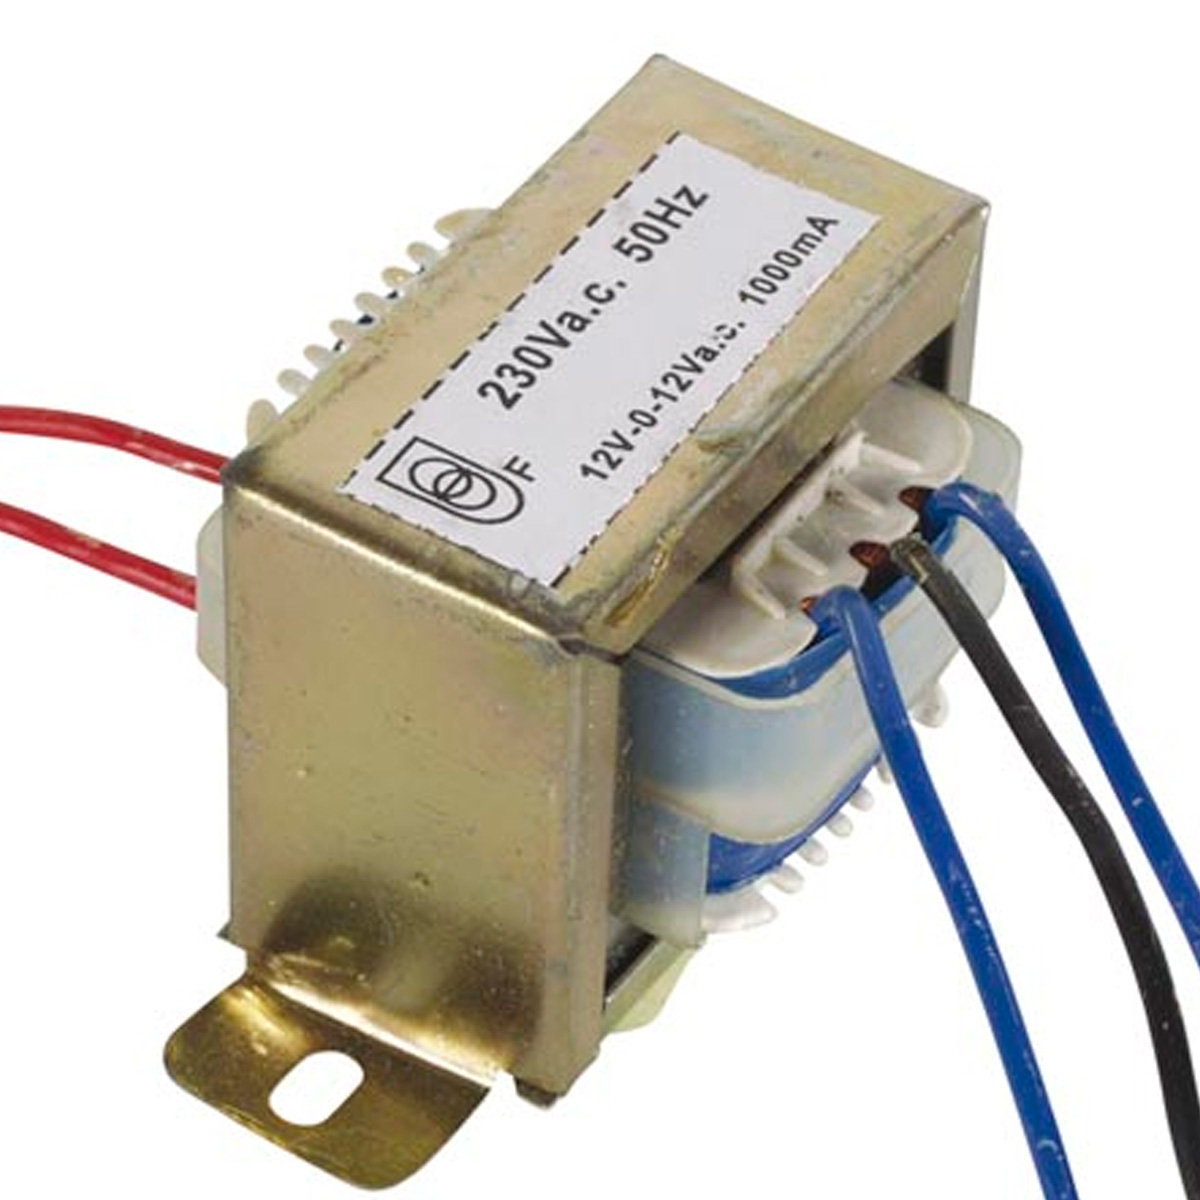 Transformador chasis abierto 12vx2 1000ma 24va for Transformador 12v a 220v